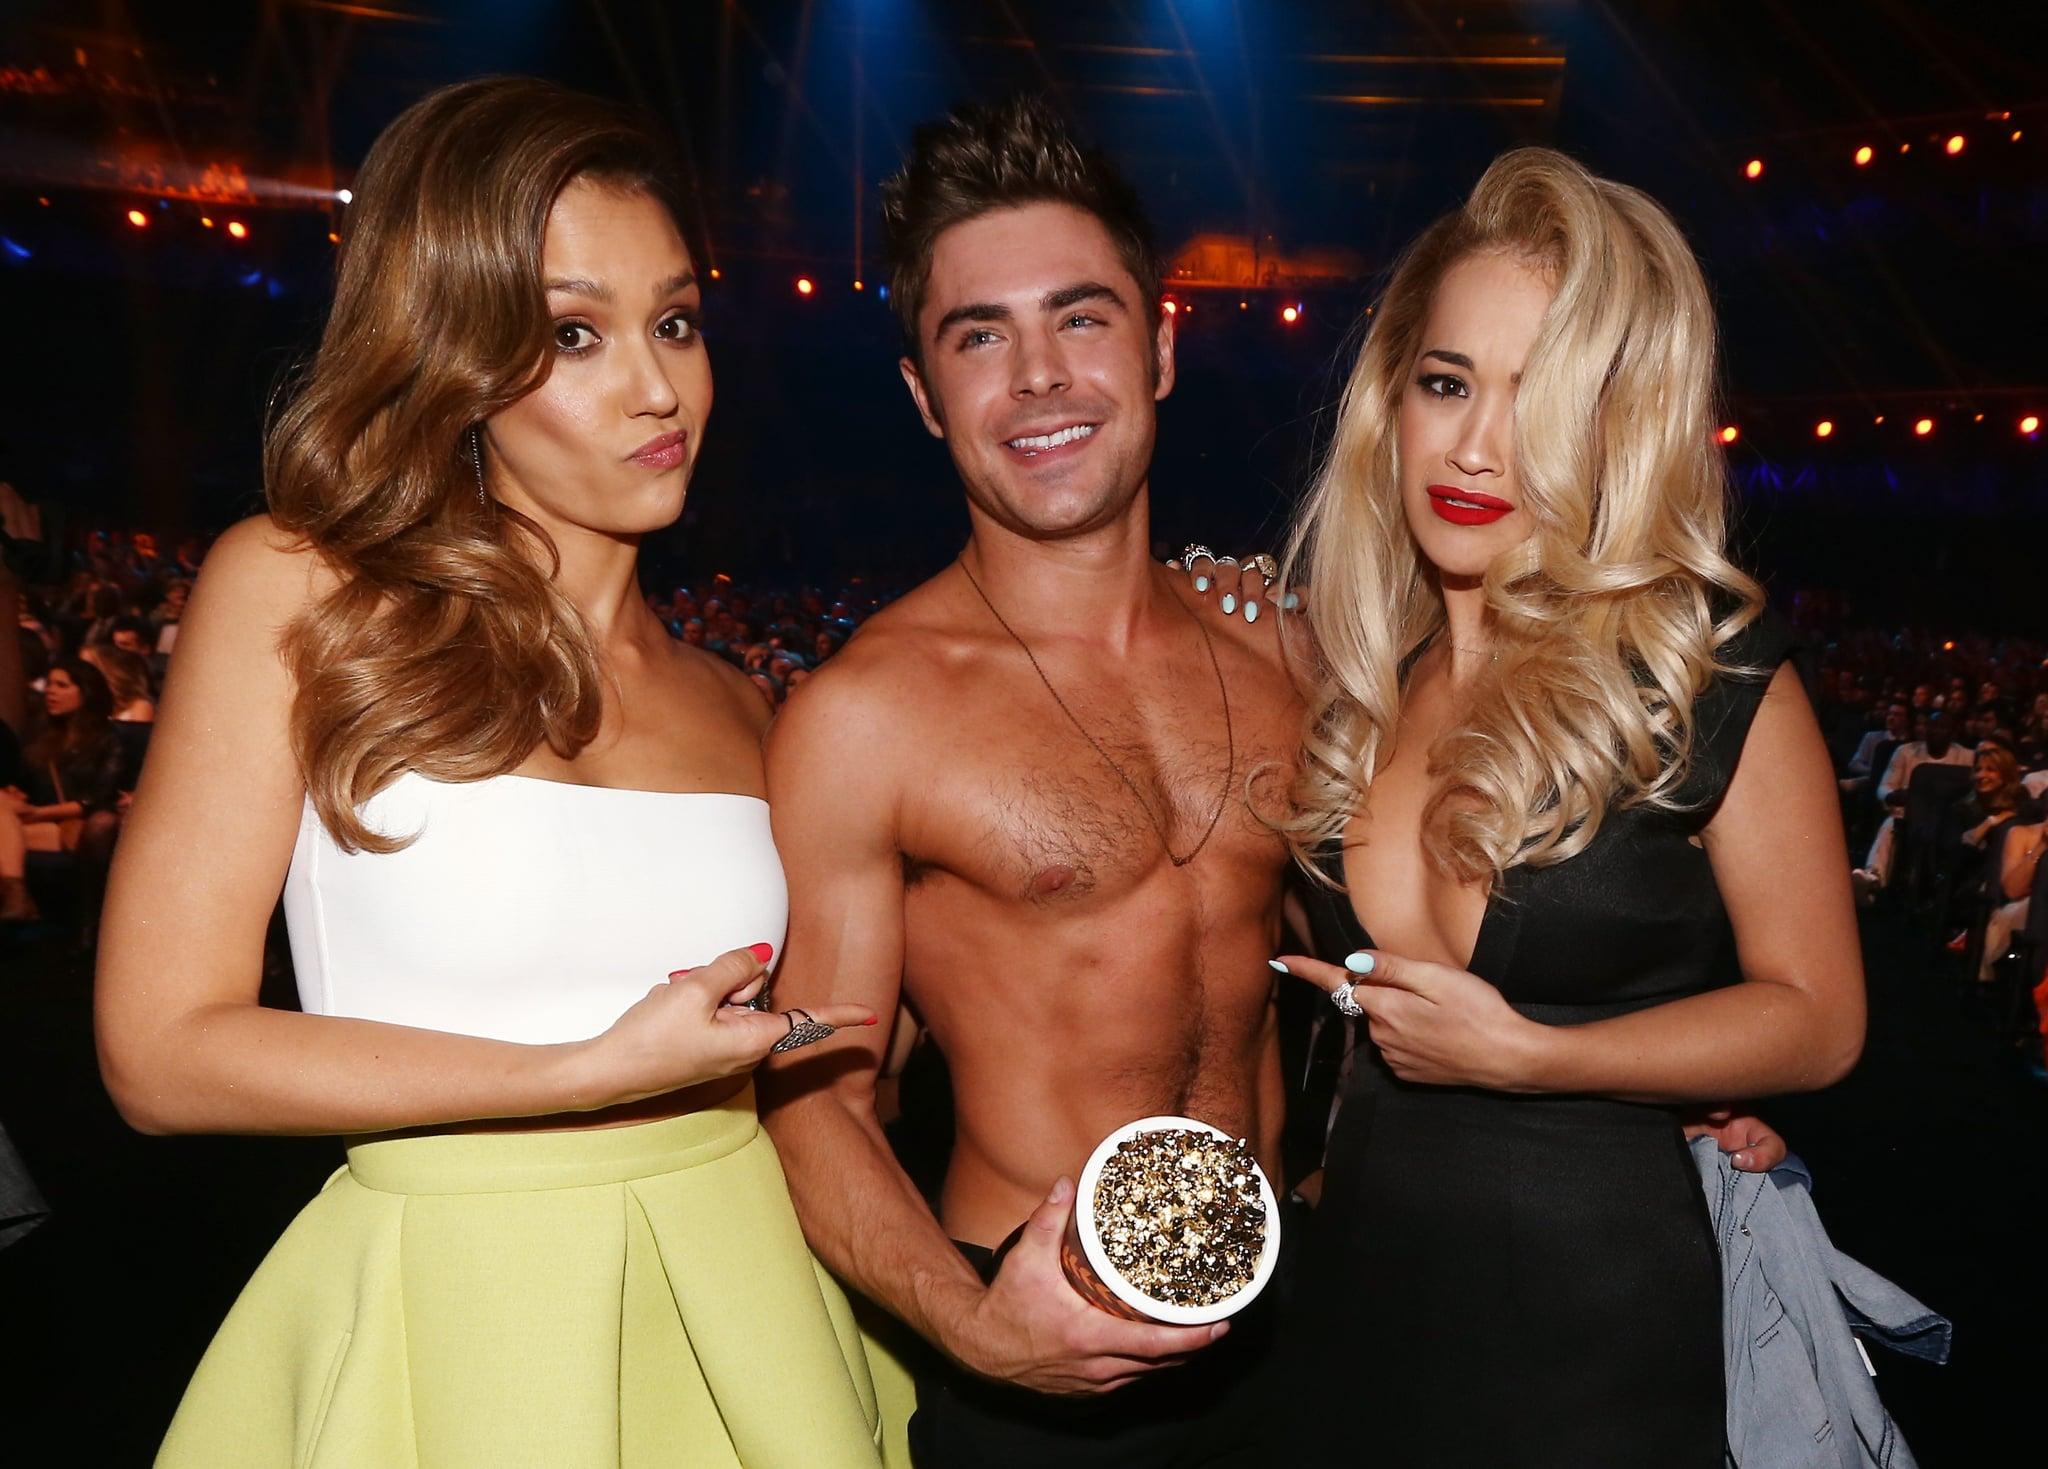 Shirtless Zac Efron found himself in the middle of a Jessica Alba and Rita Ora sandwich.